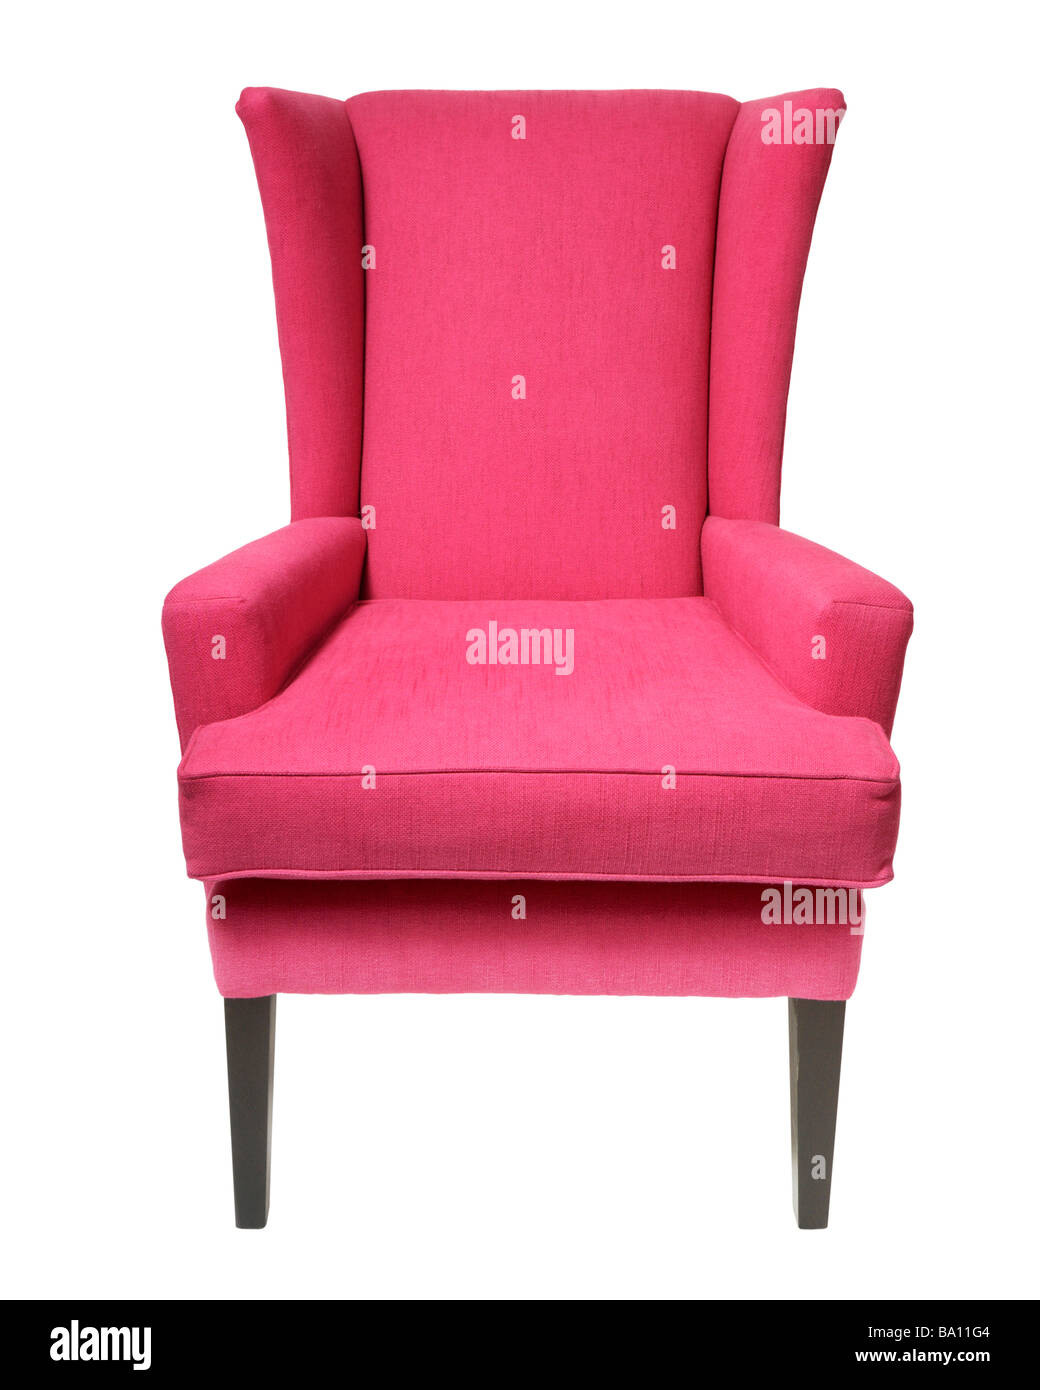 Magenta Chair Stock Photo